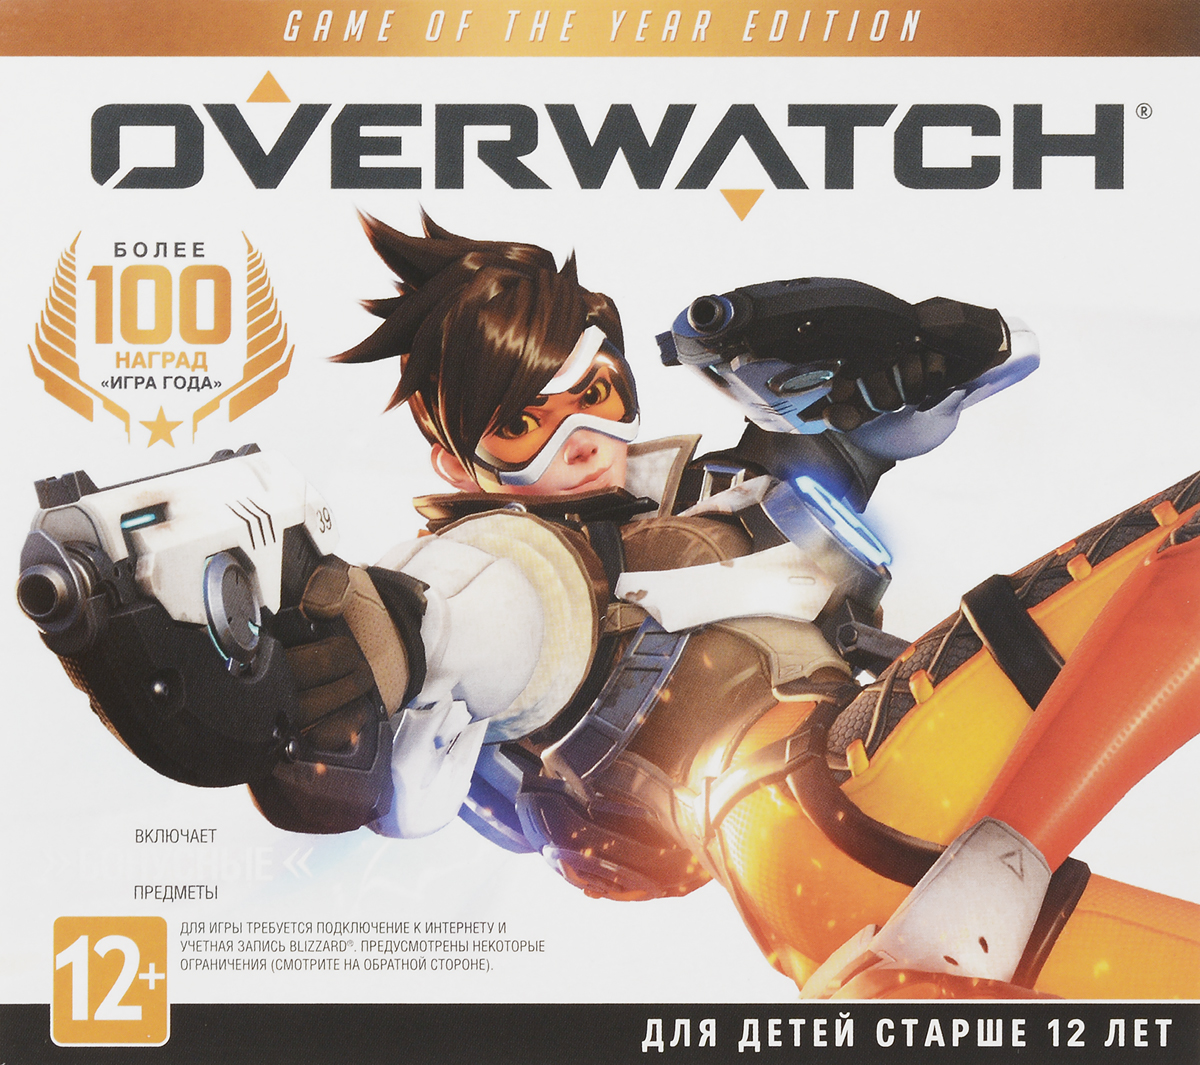 Overwatch: Game of the Year Edition (Jewel Case) the lost christmas gift